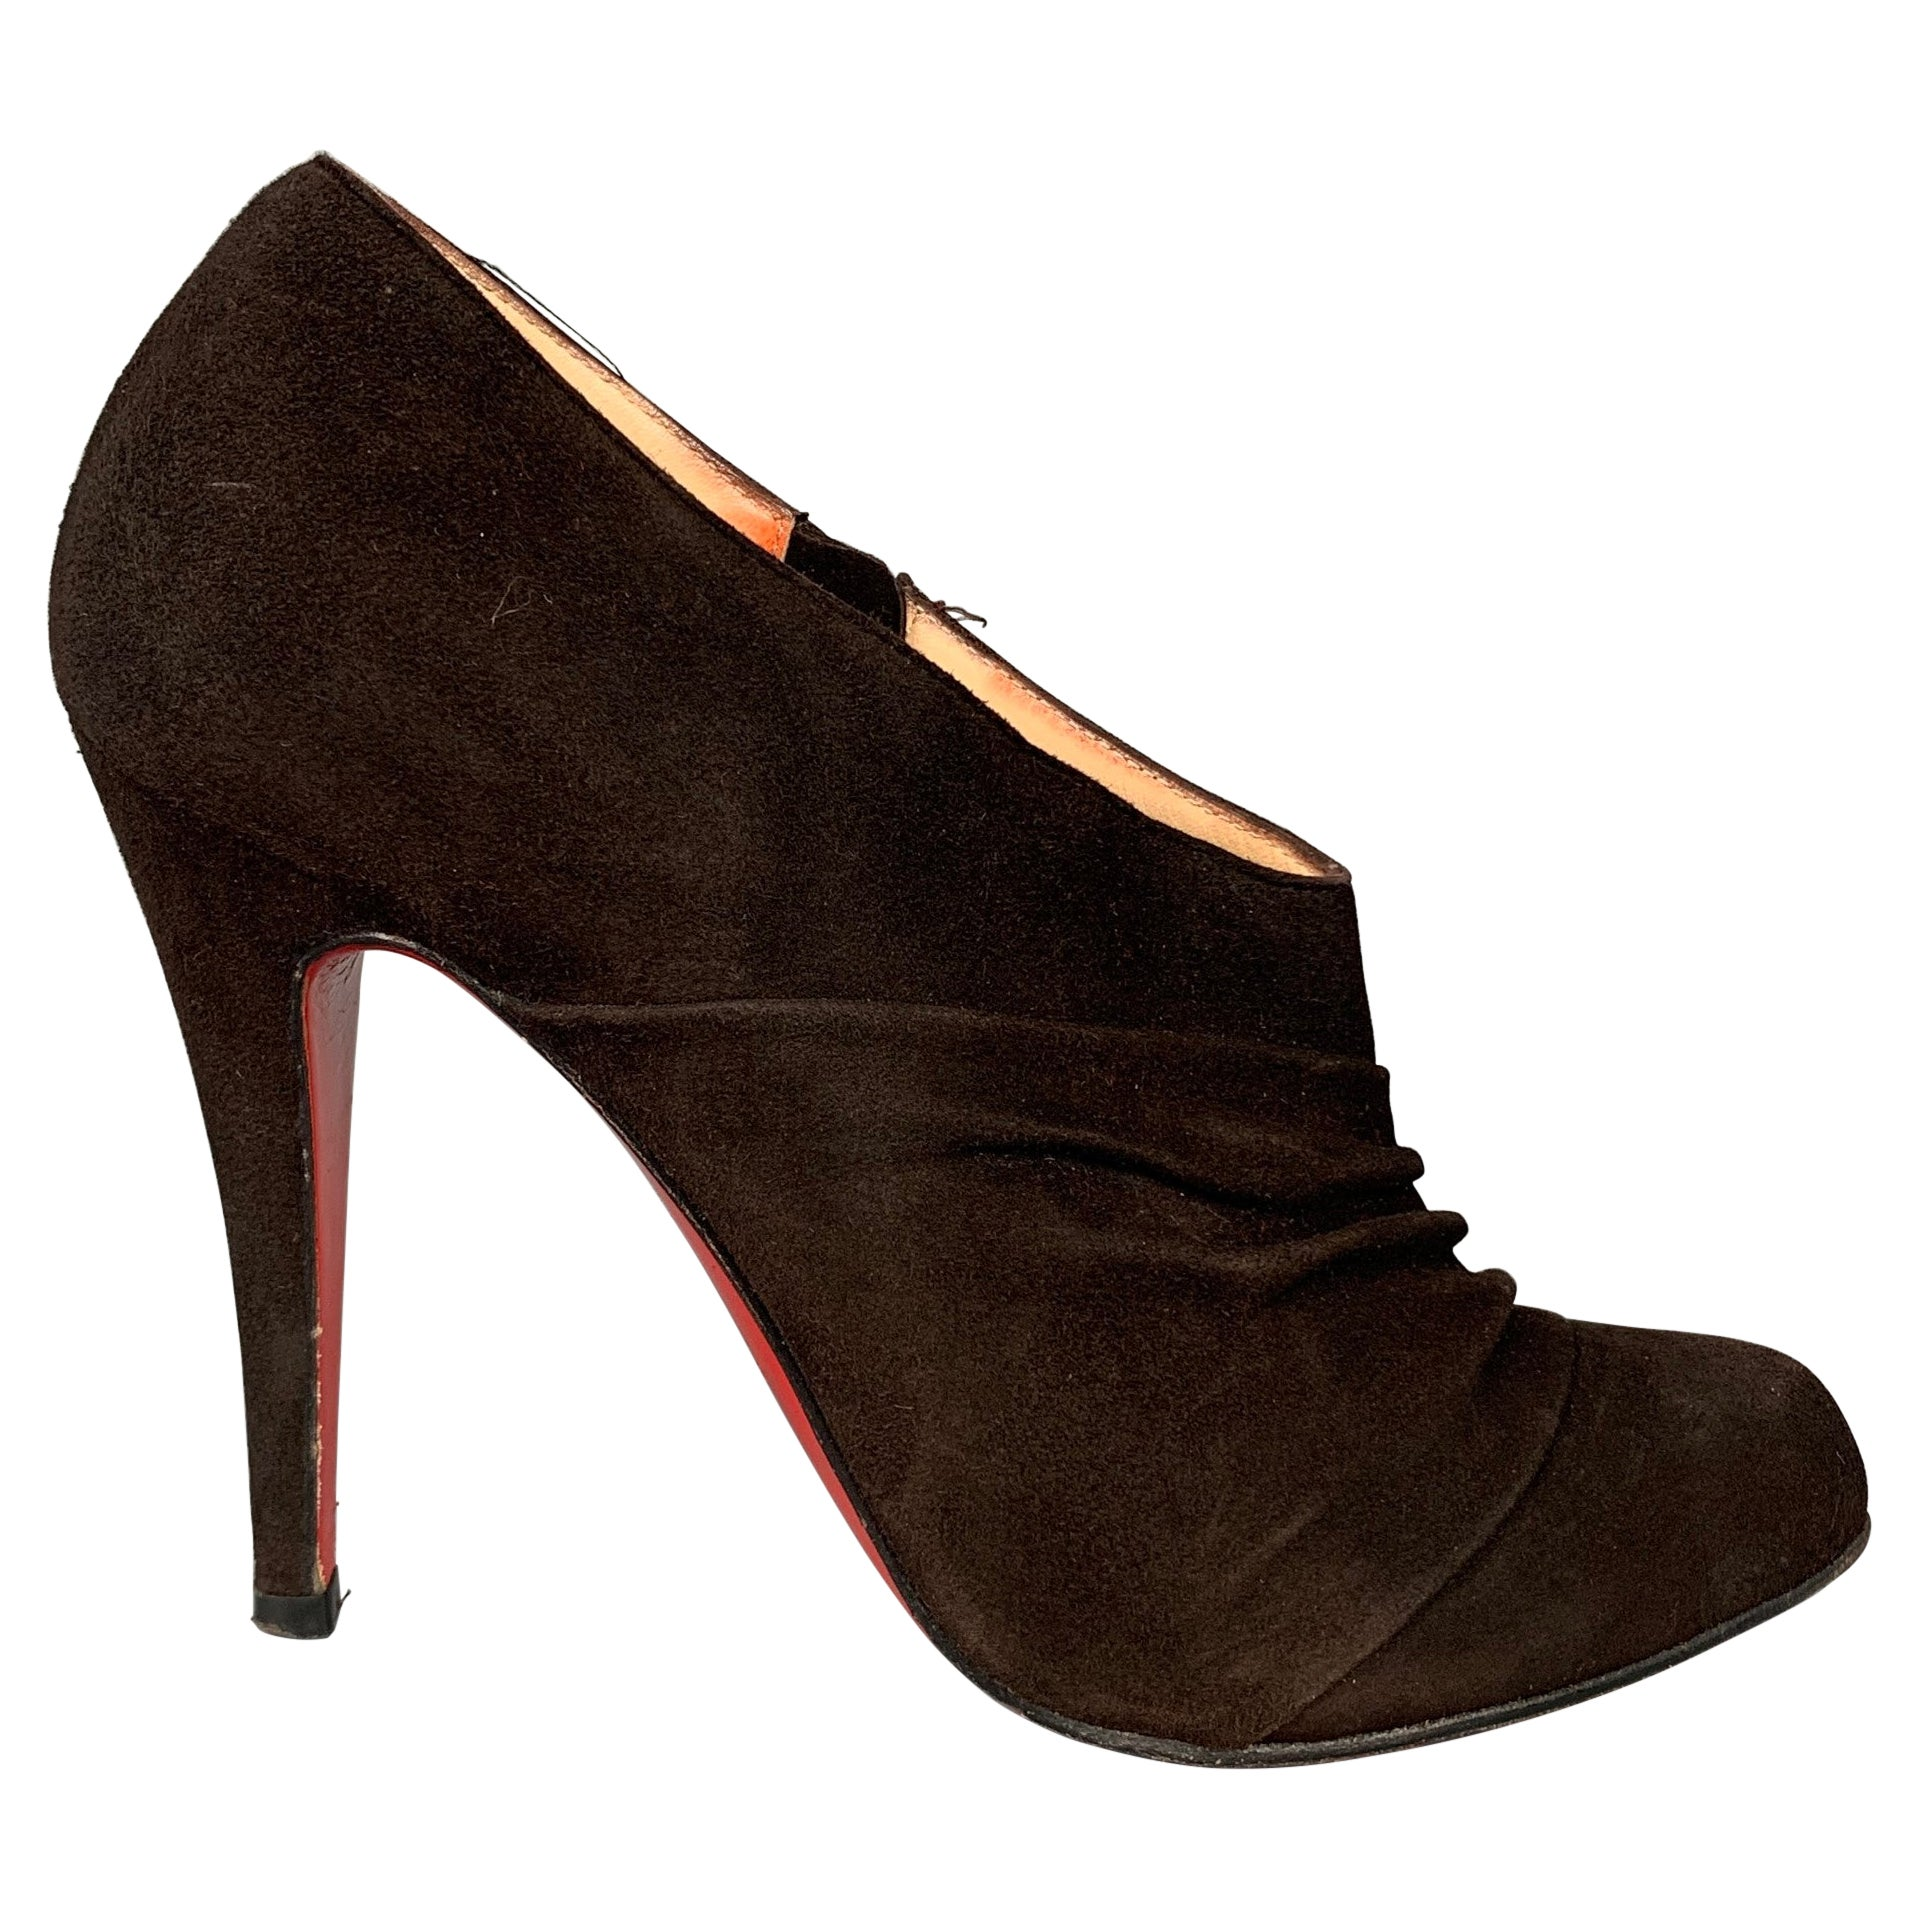 CHRISTIAN LOUBOUTIN Size 7 Dark Brown Suede Ruched Boots